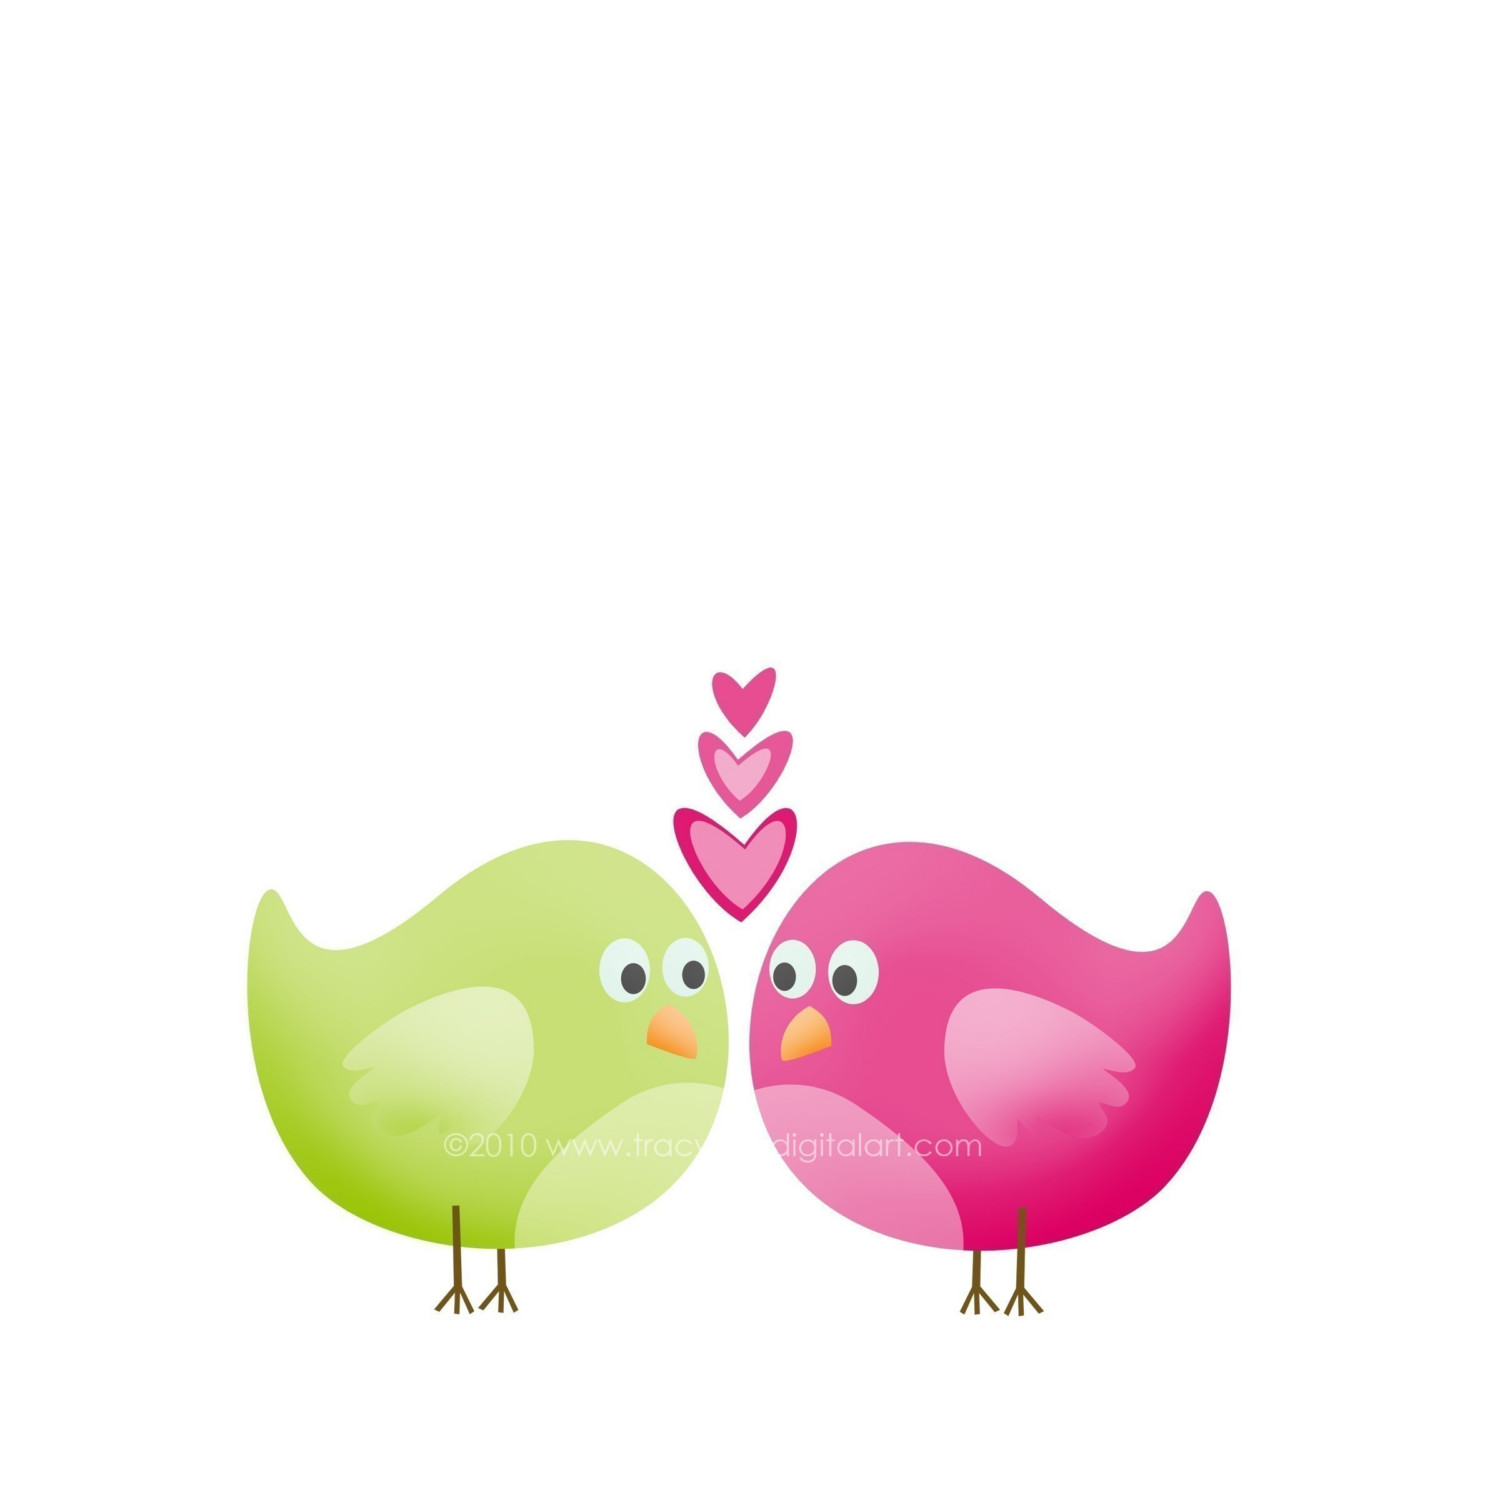 Love Birds Clipart-love birds clipart-10